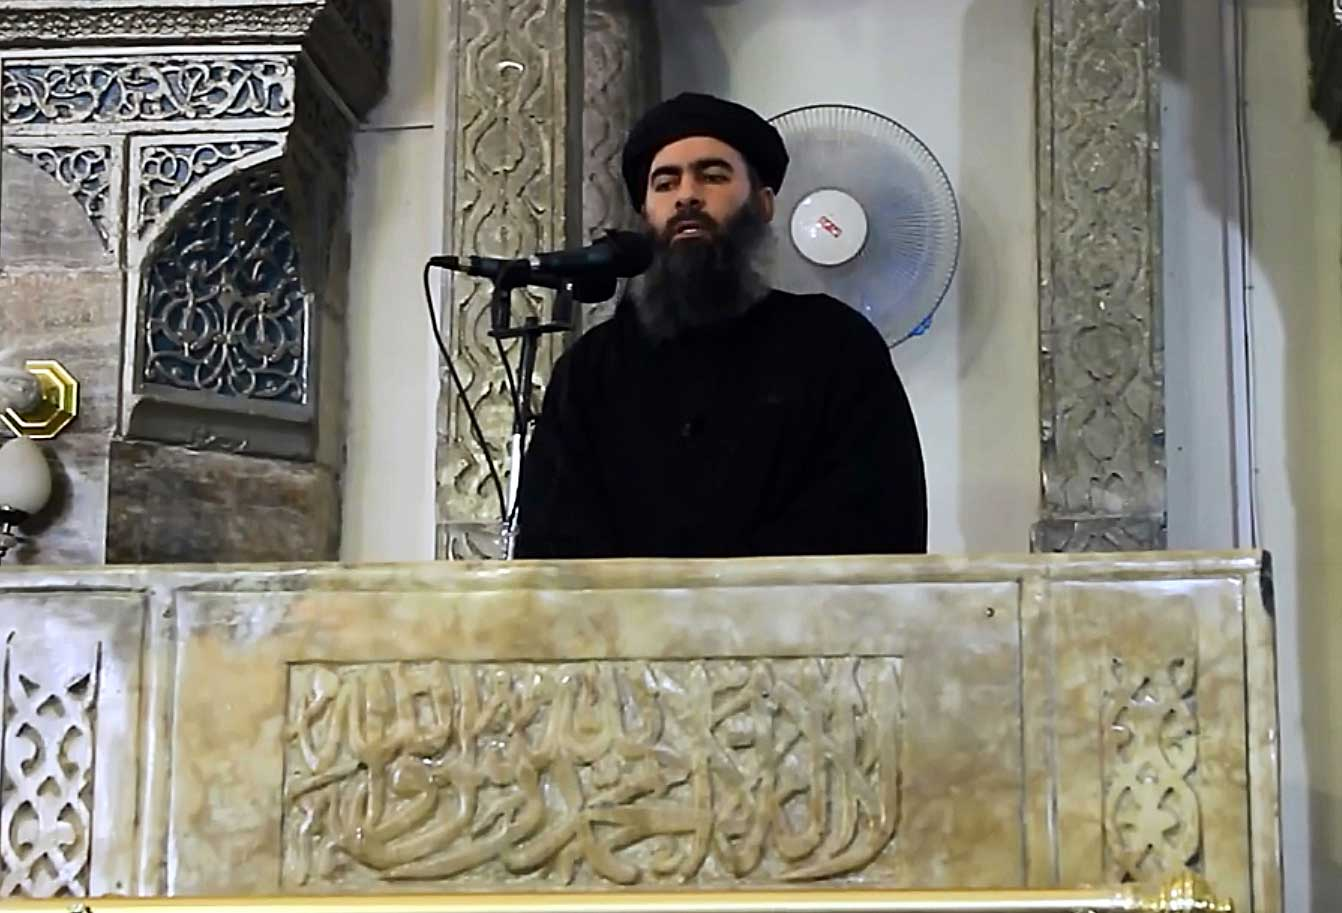 ISIS leader Abu Bakr al-Baghdadi, seen in this video screengrab, at the mosque in Mosul in 2014.